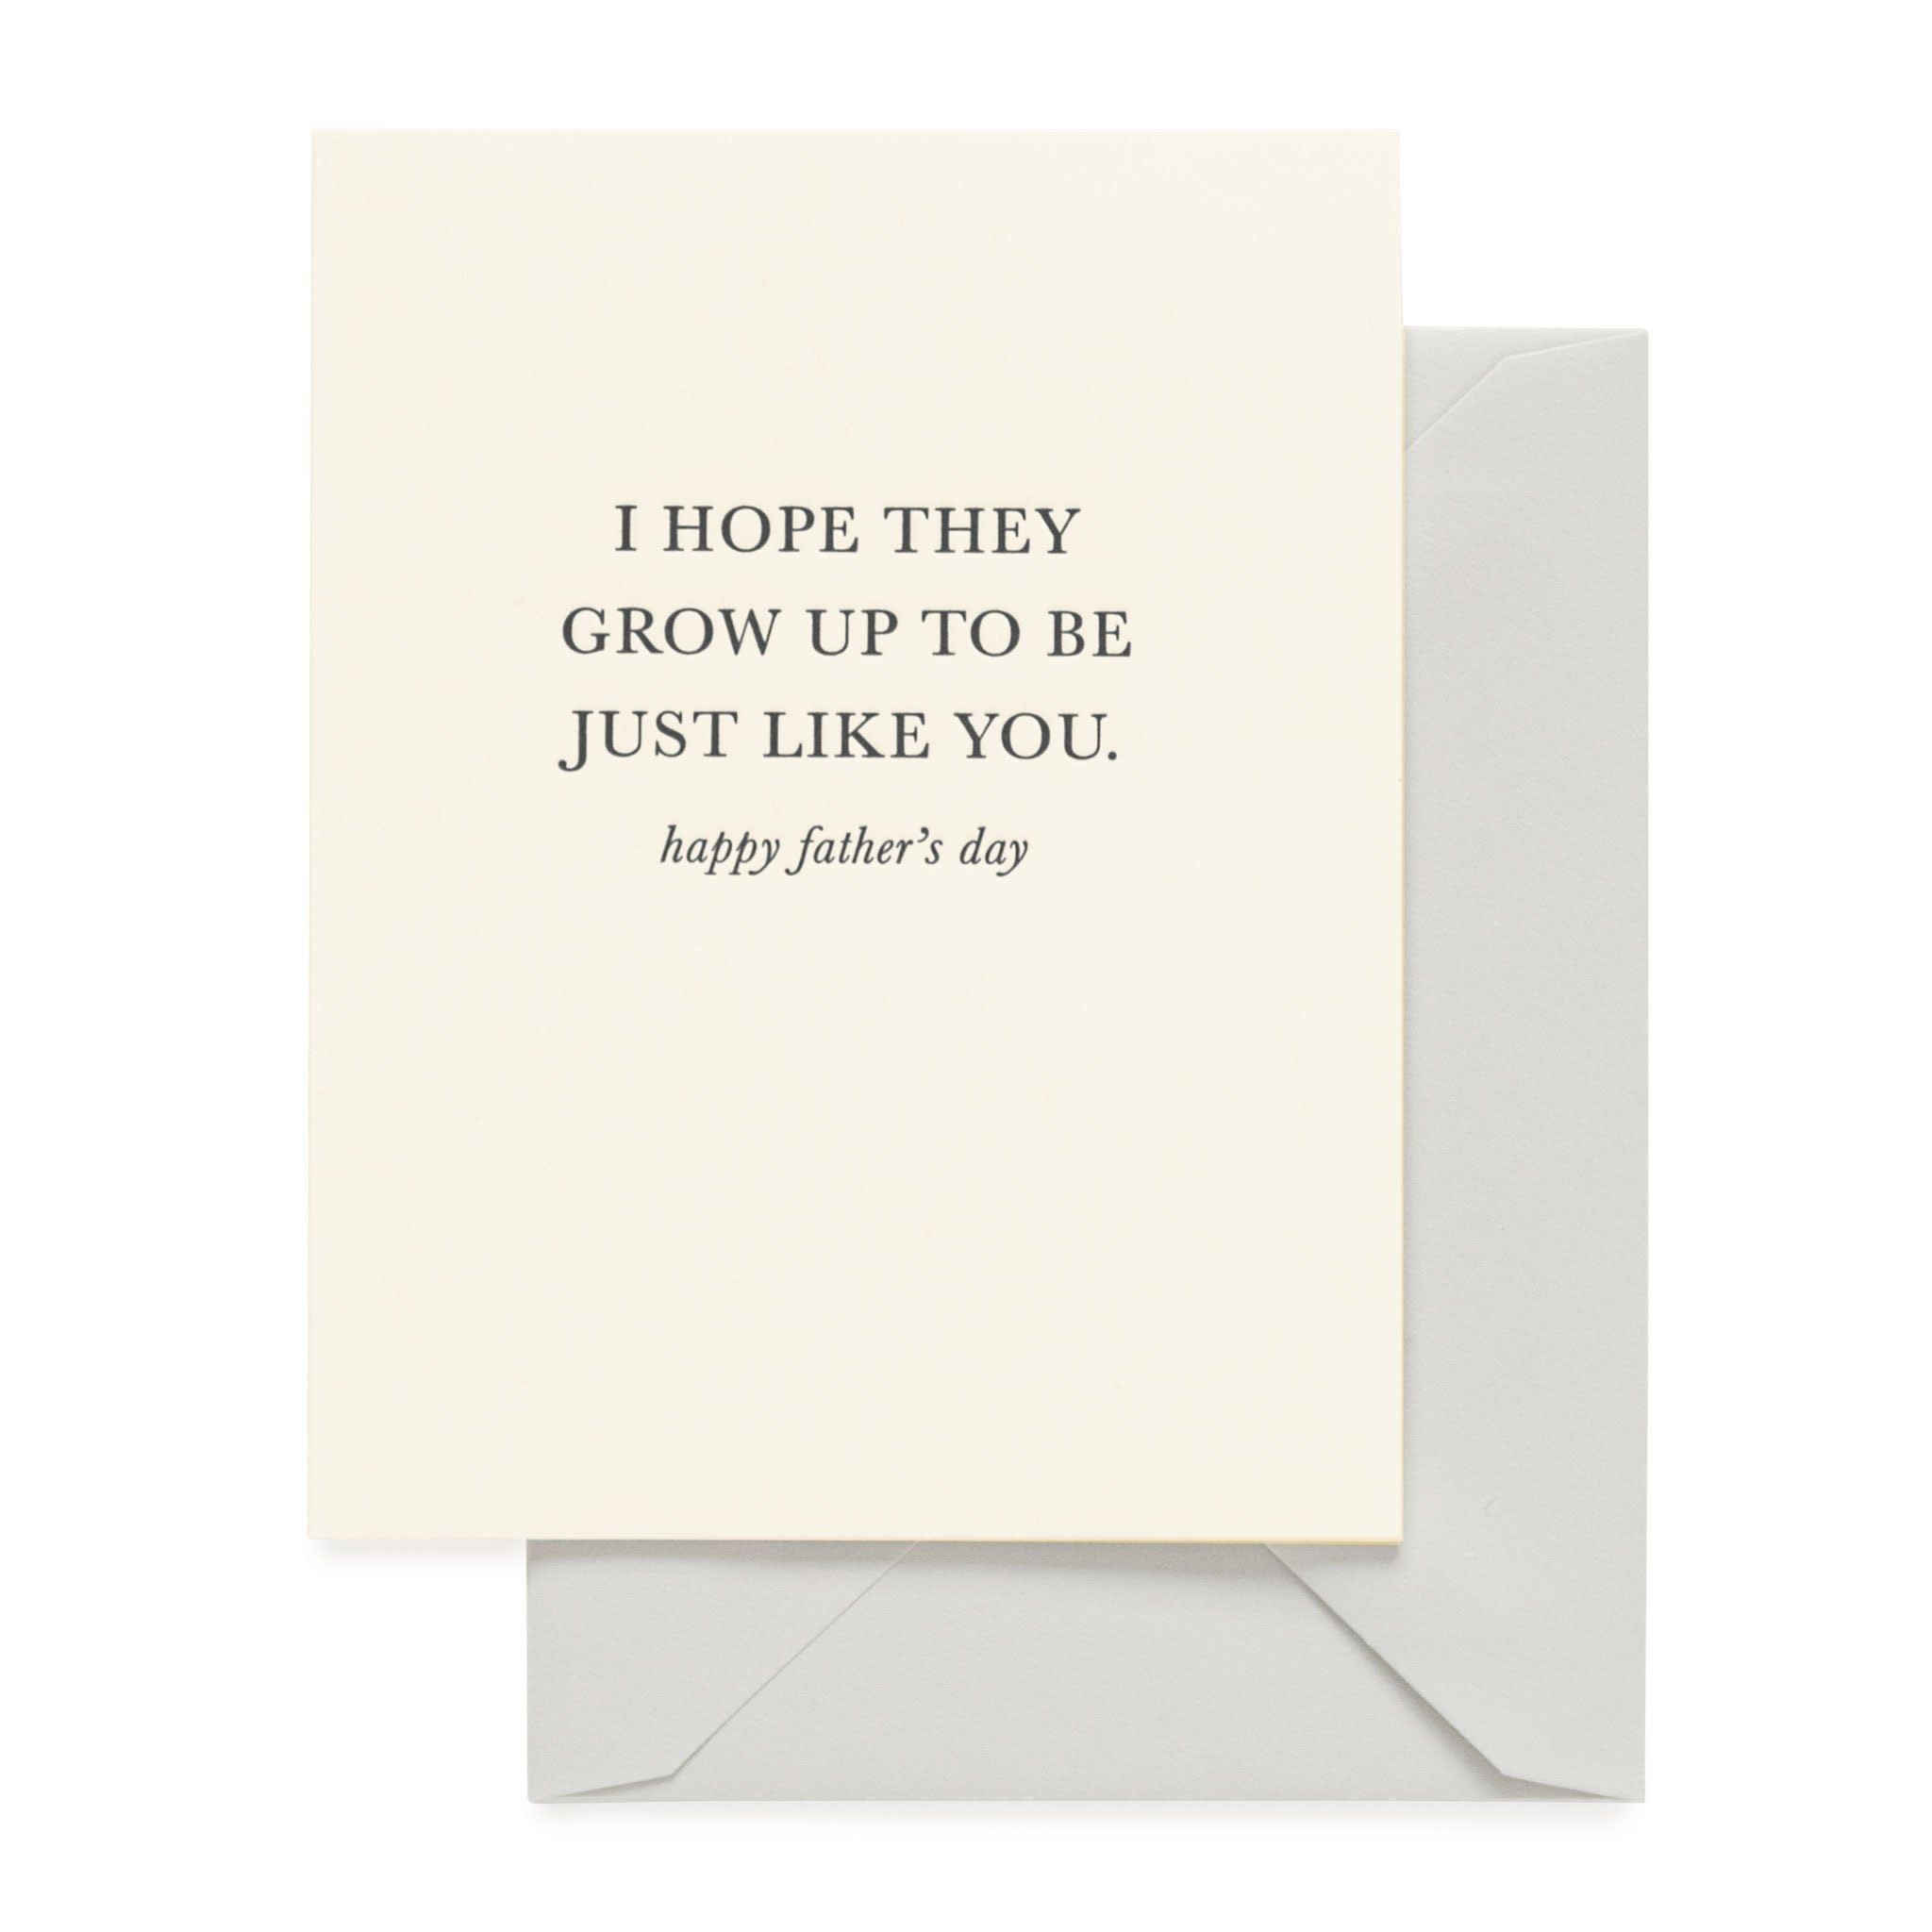 SUGAR PAPER Just Like You Father's Day Card